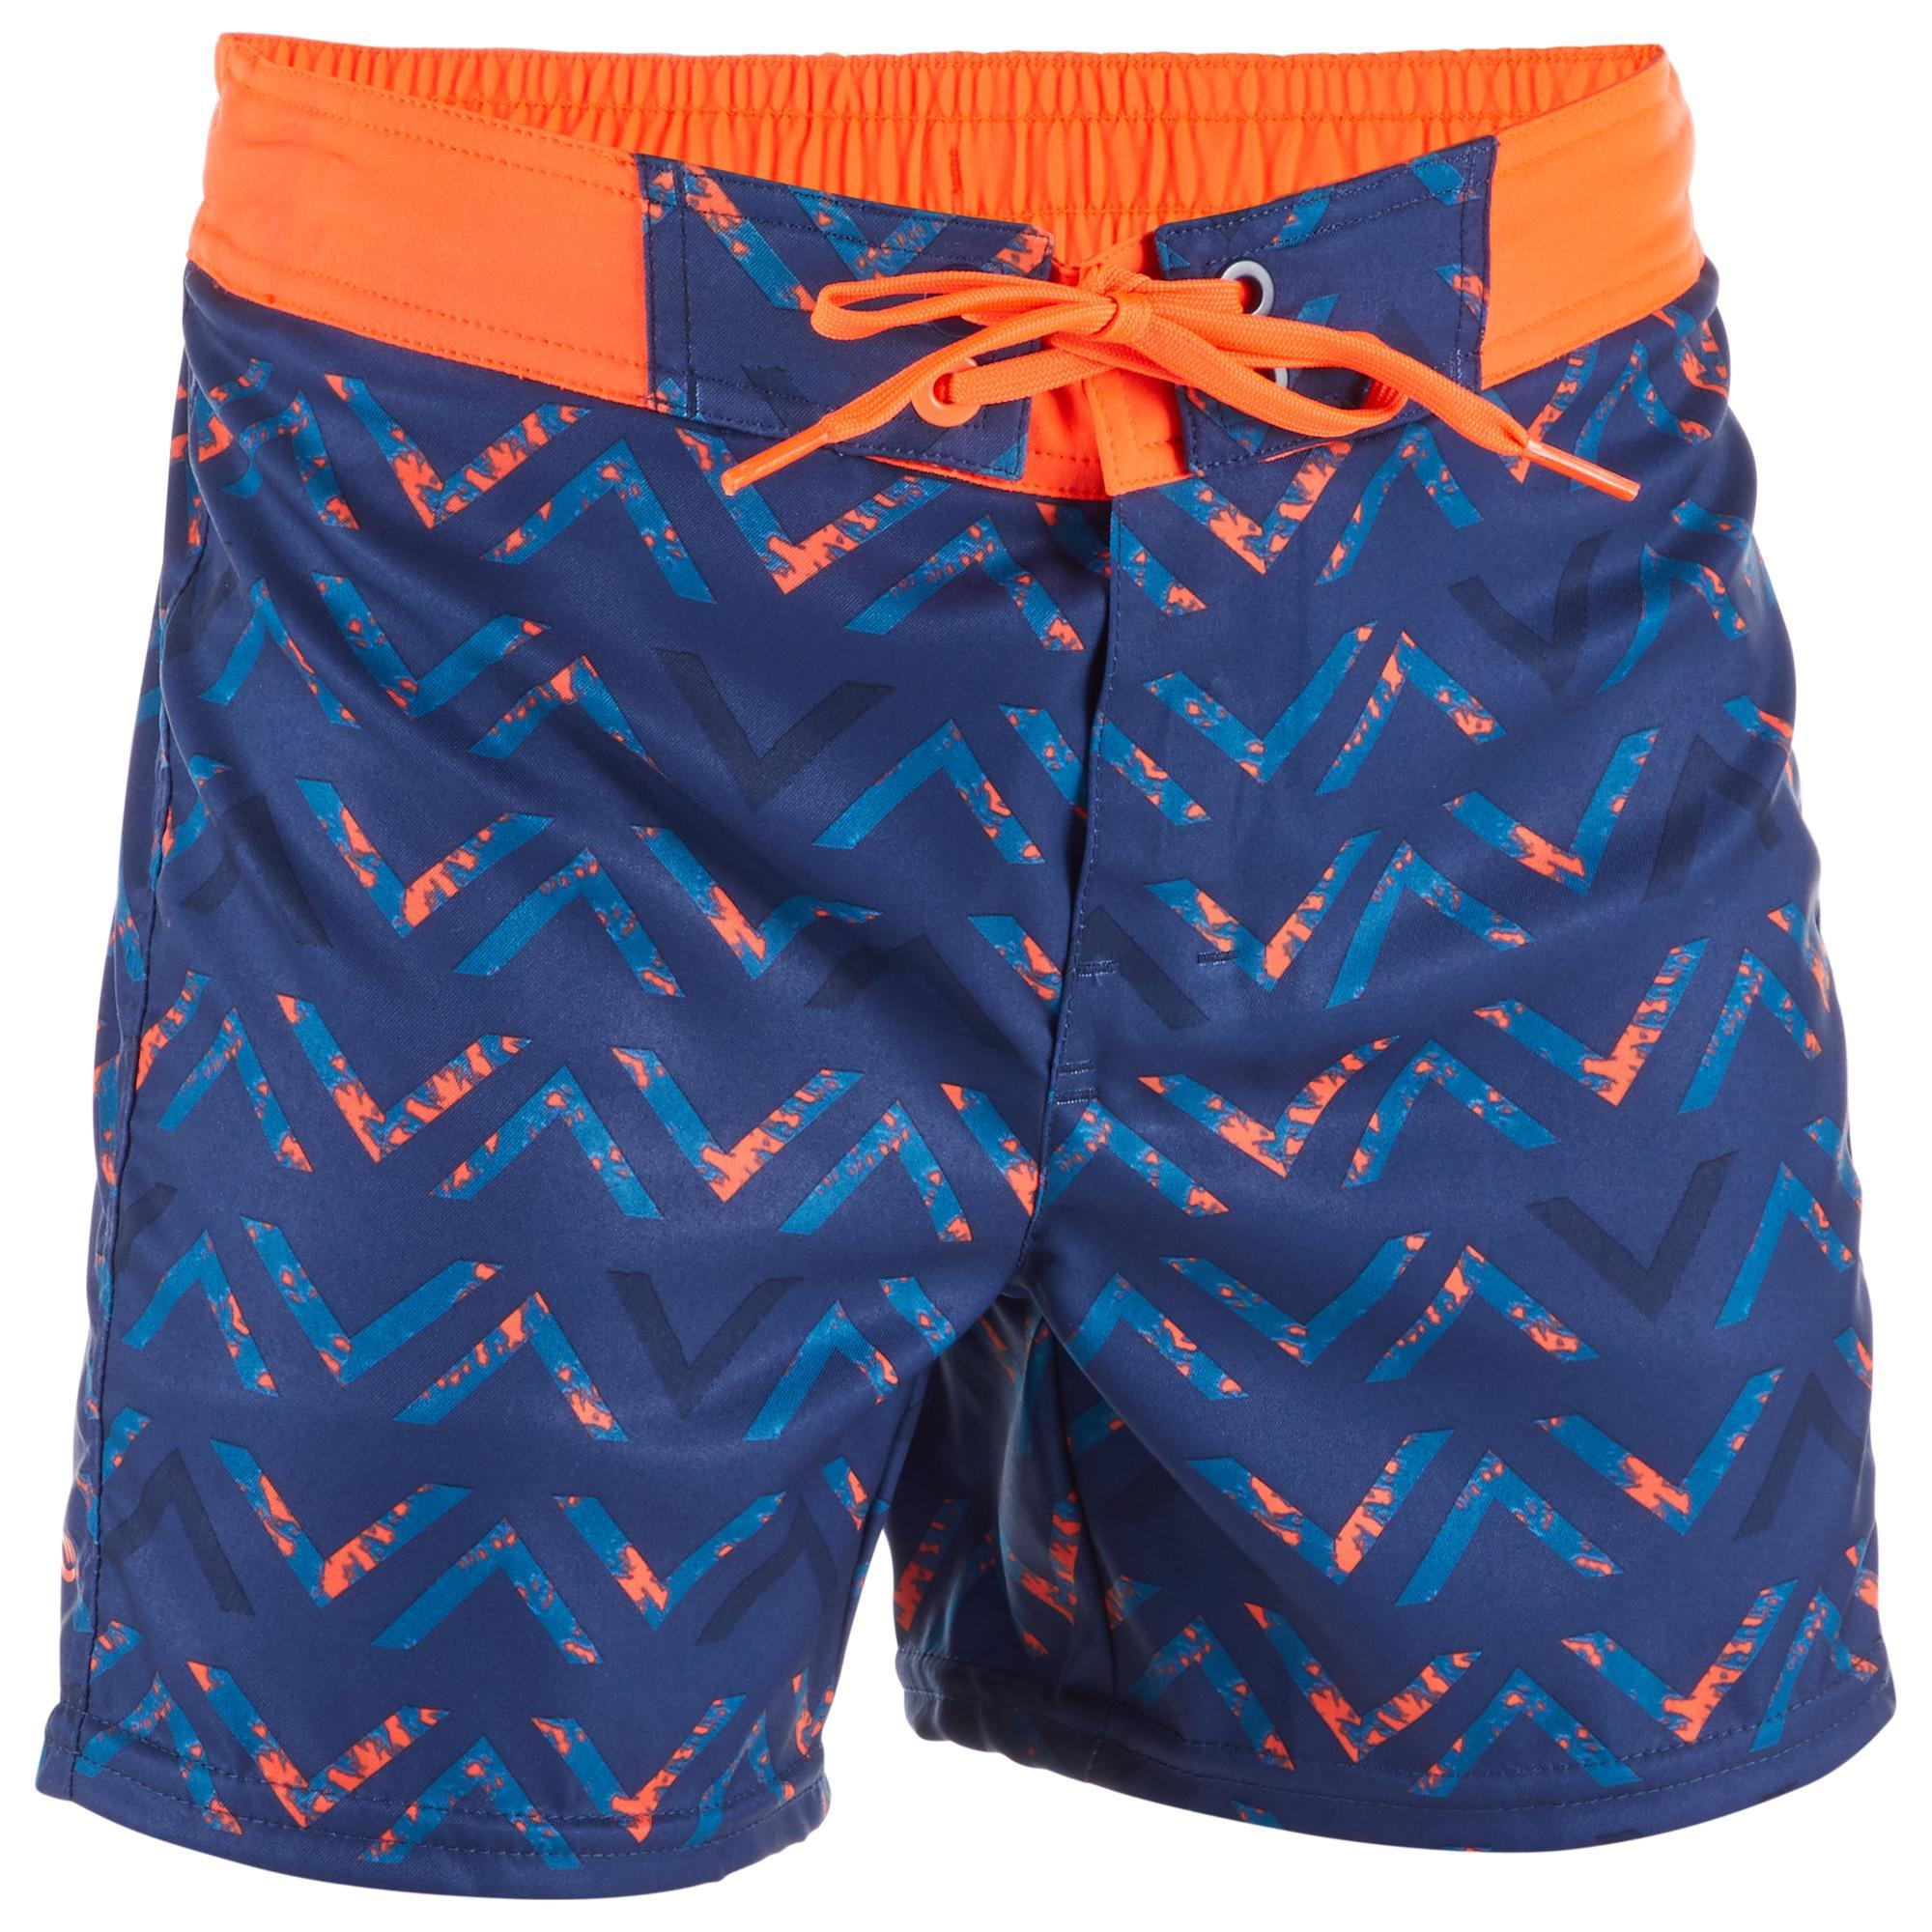 Surf boardshort court 500 kid chibou red olaian